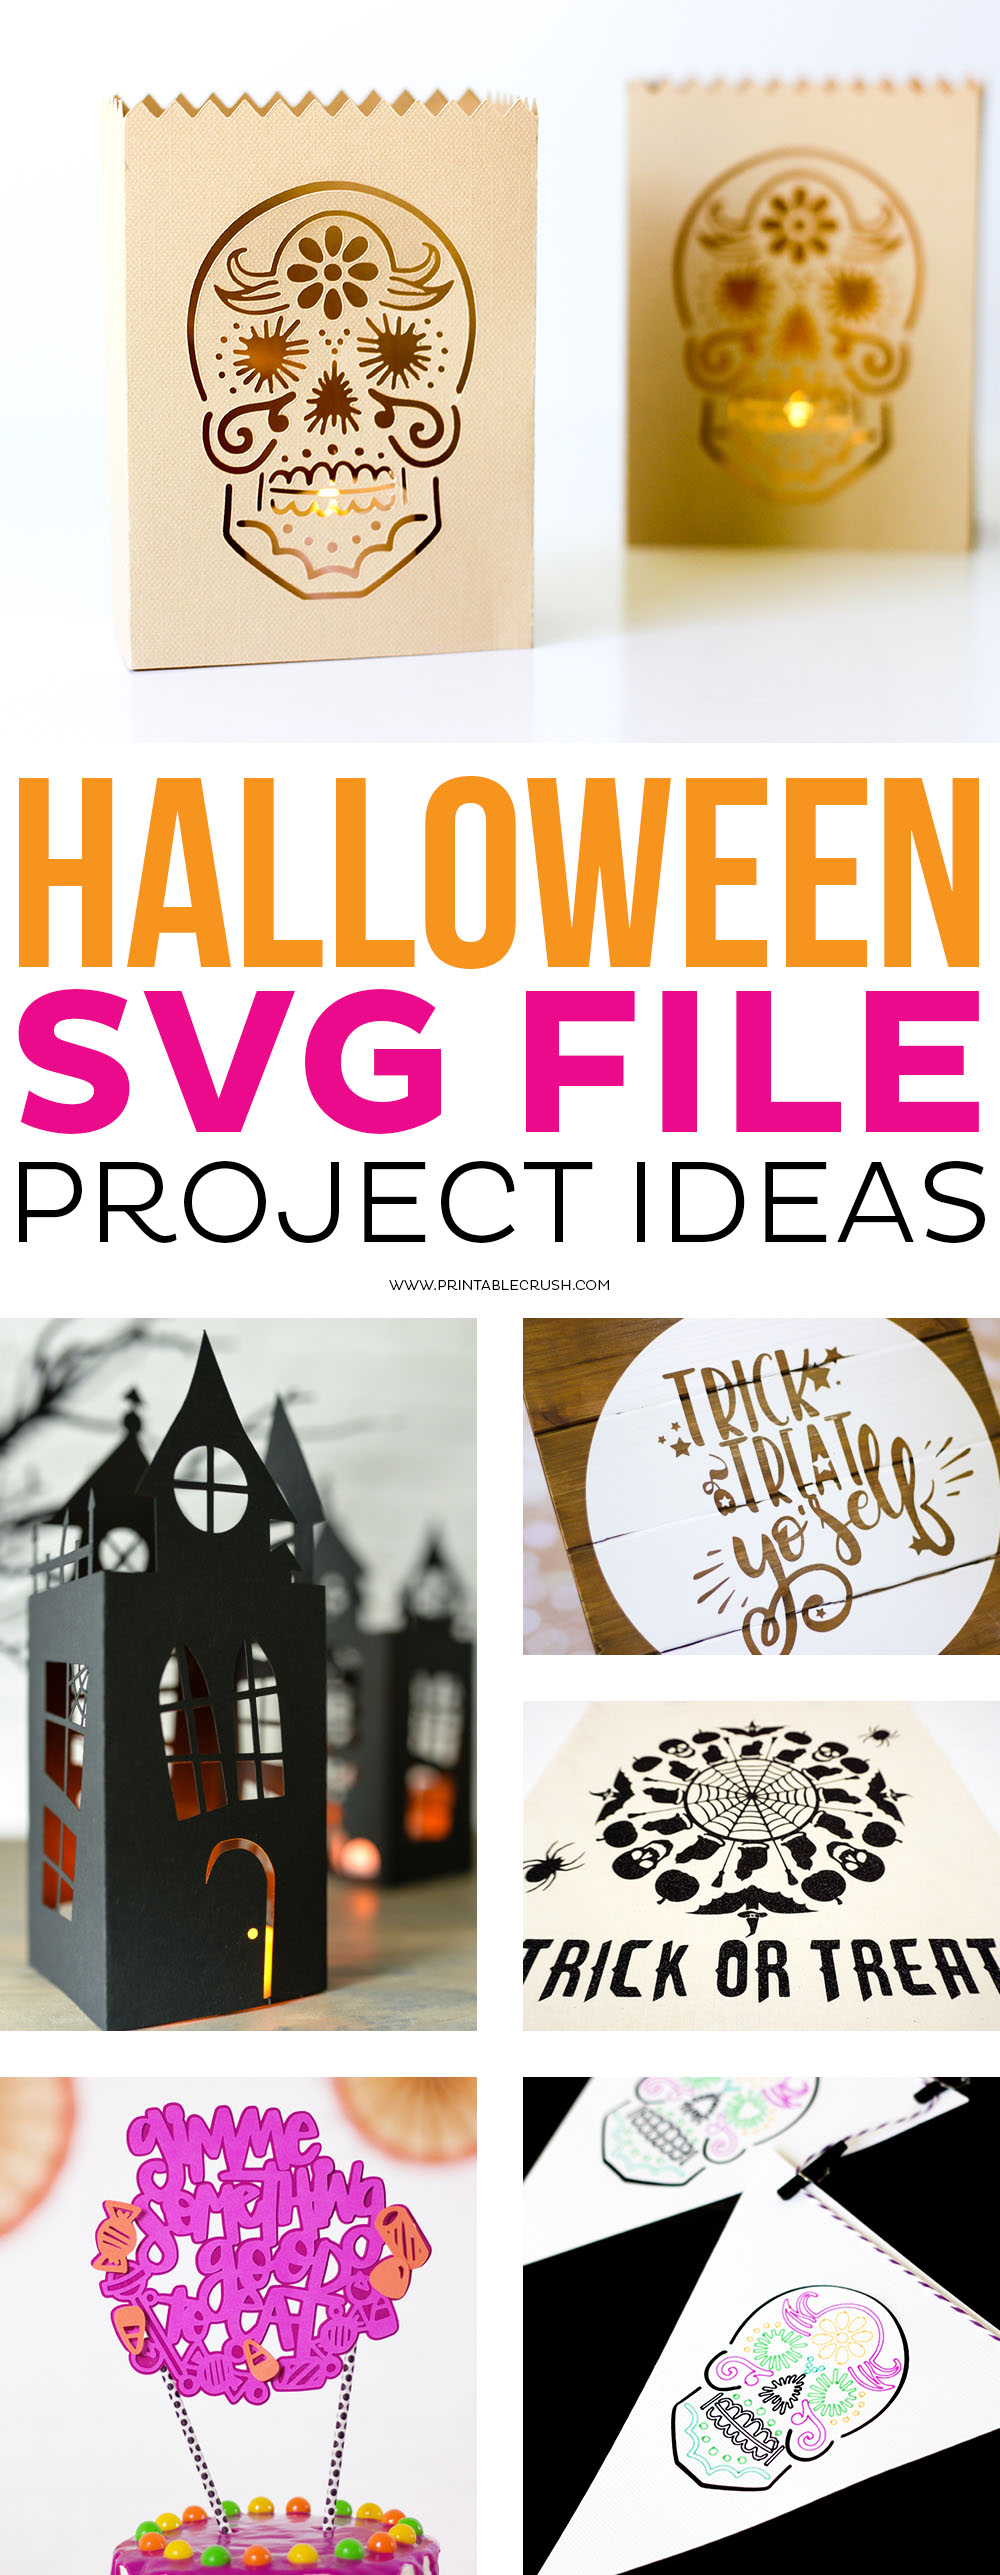 Halloween SVG File Project Ideas - Printable Crush